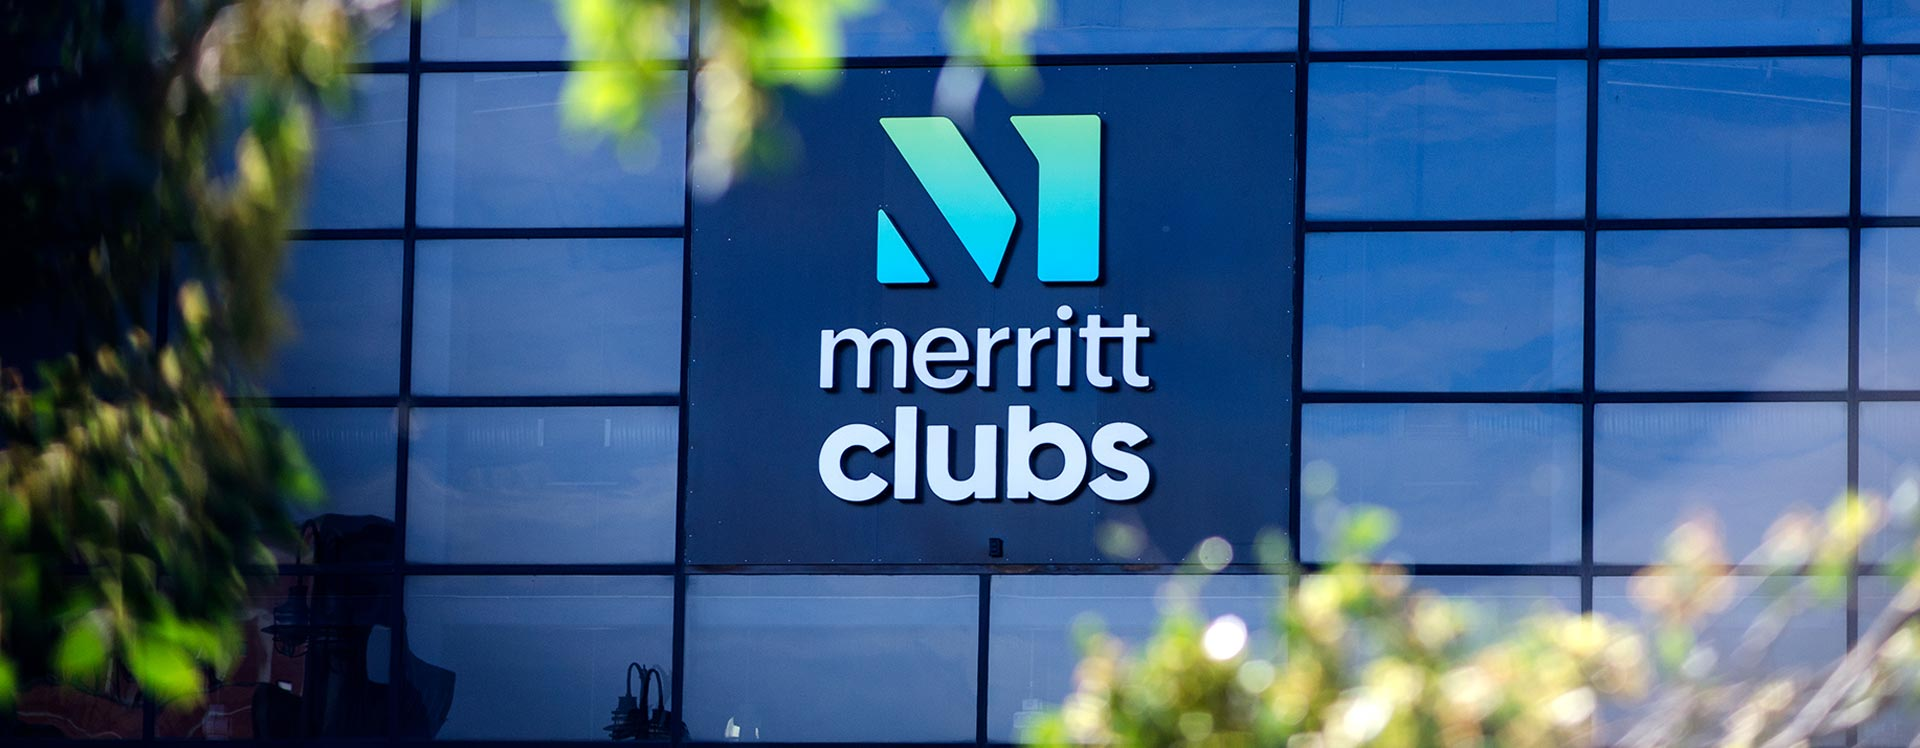 Merritt Clubs Logo on a building - Baltimore based gym